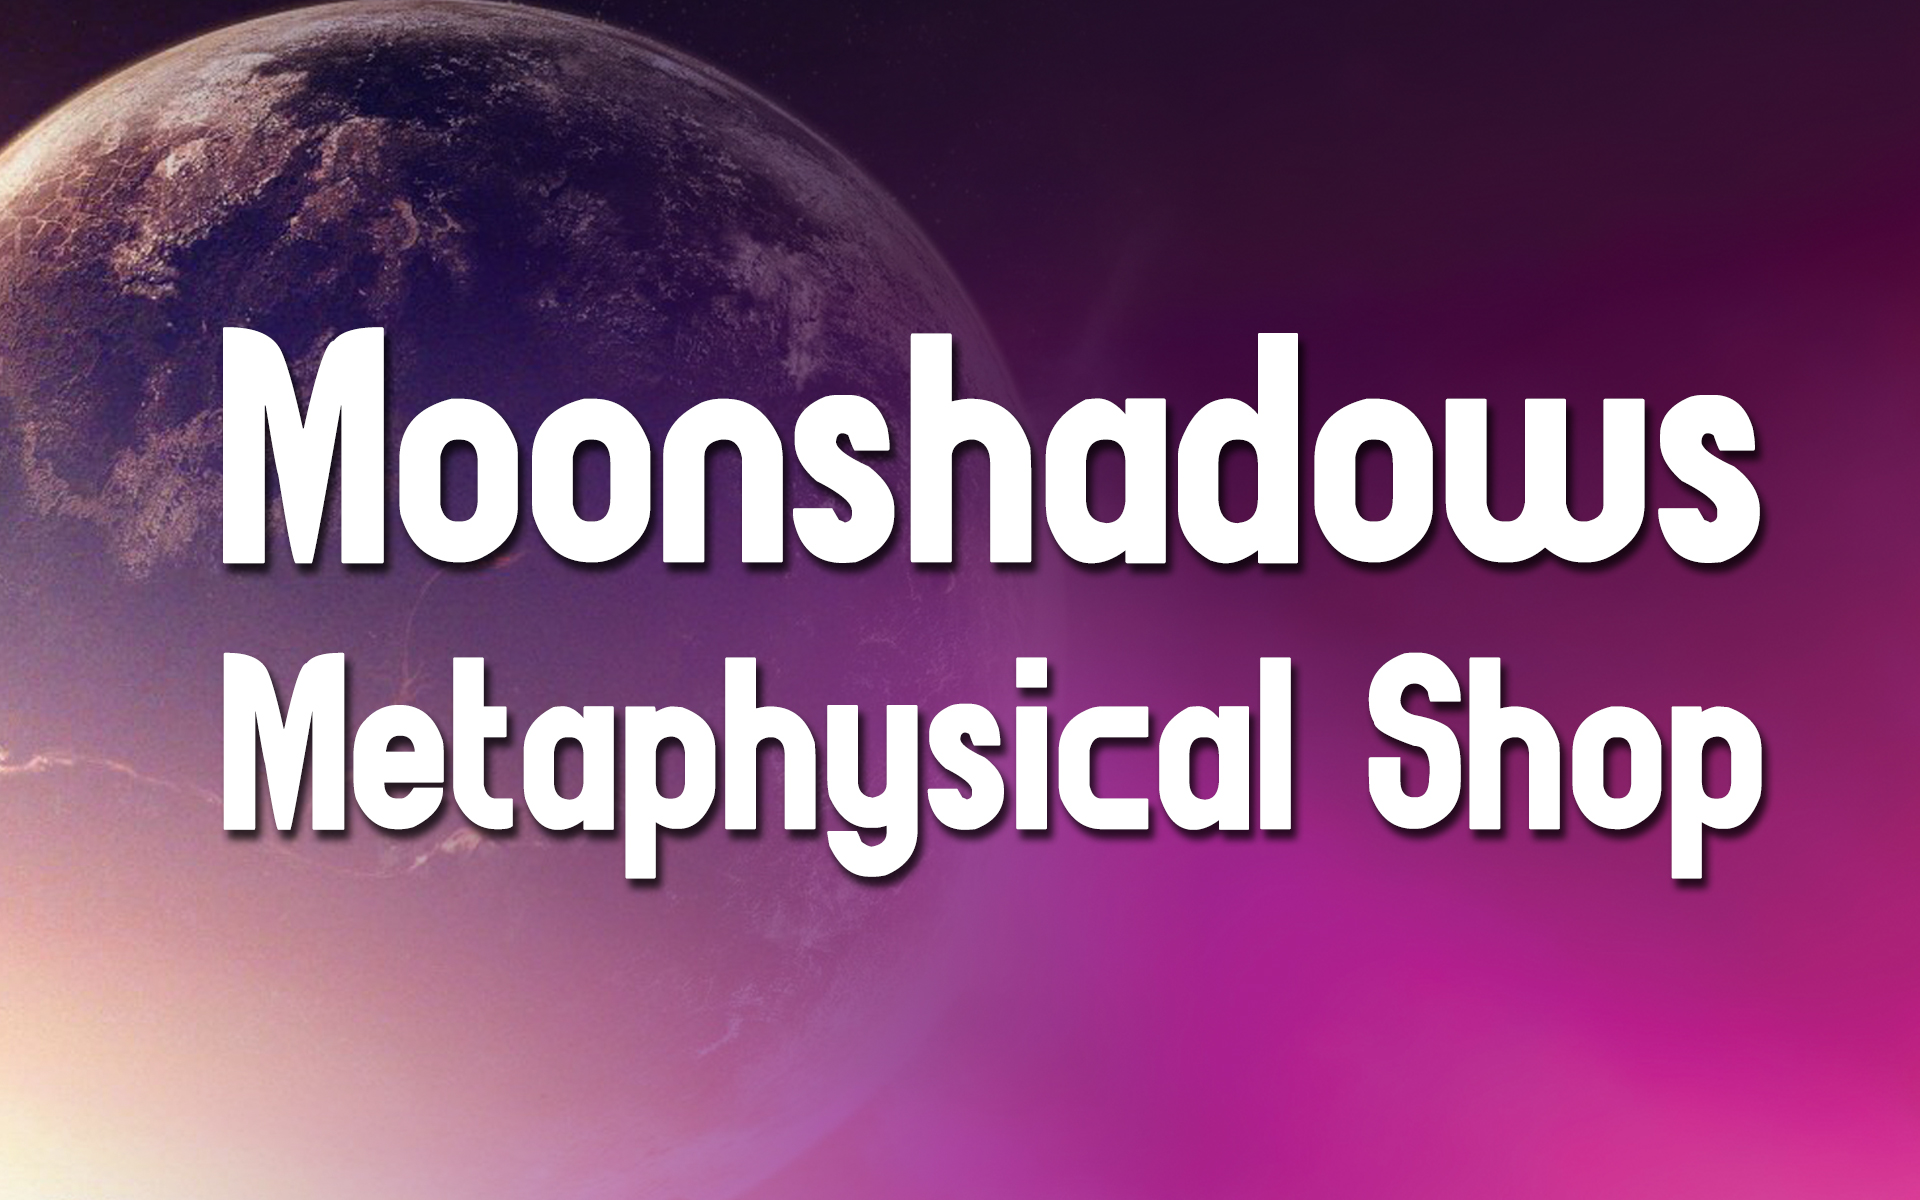 moonshadowsmetaphysical.com